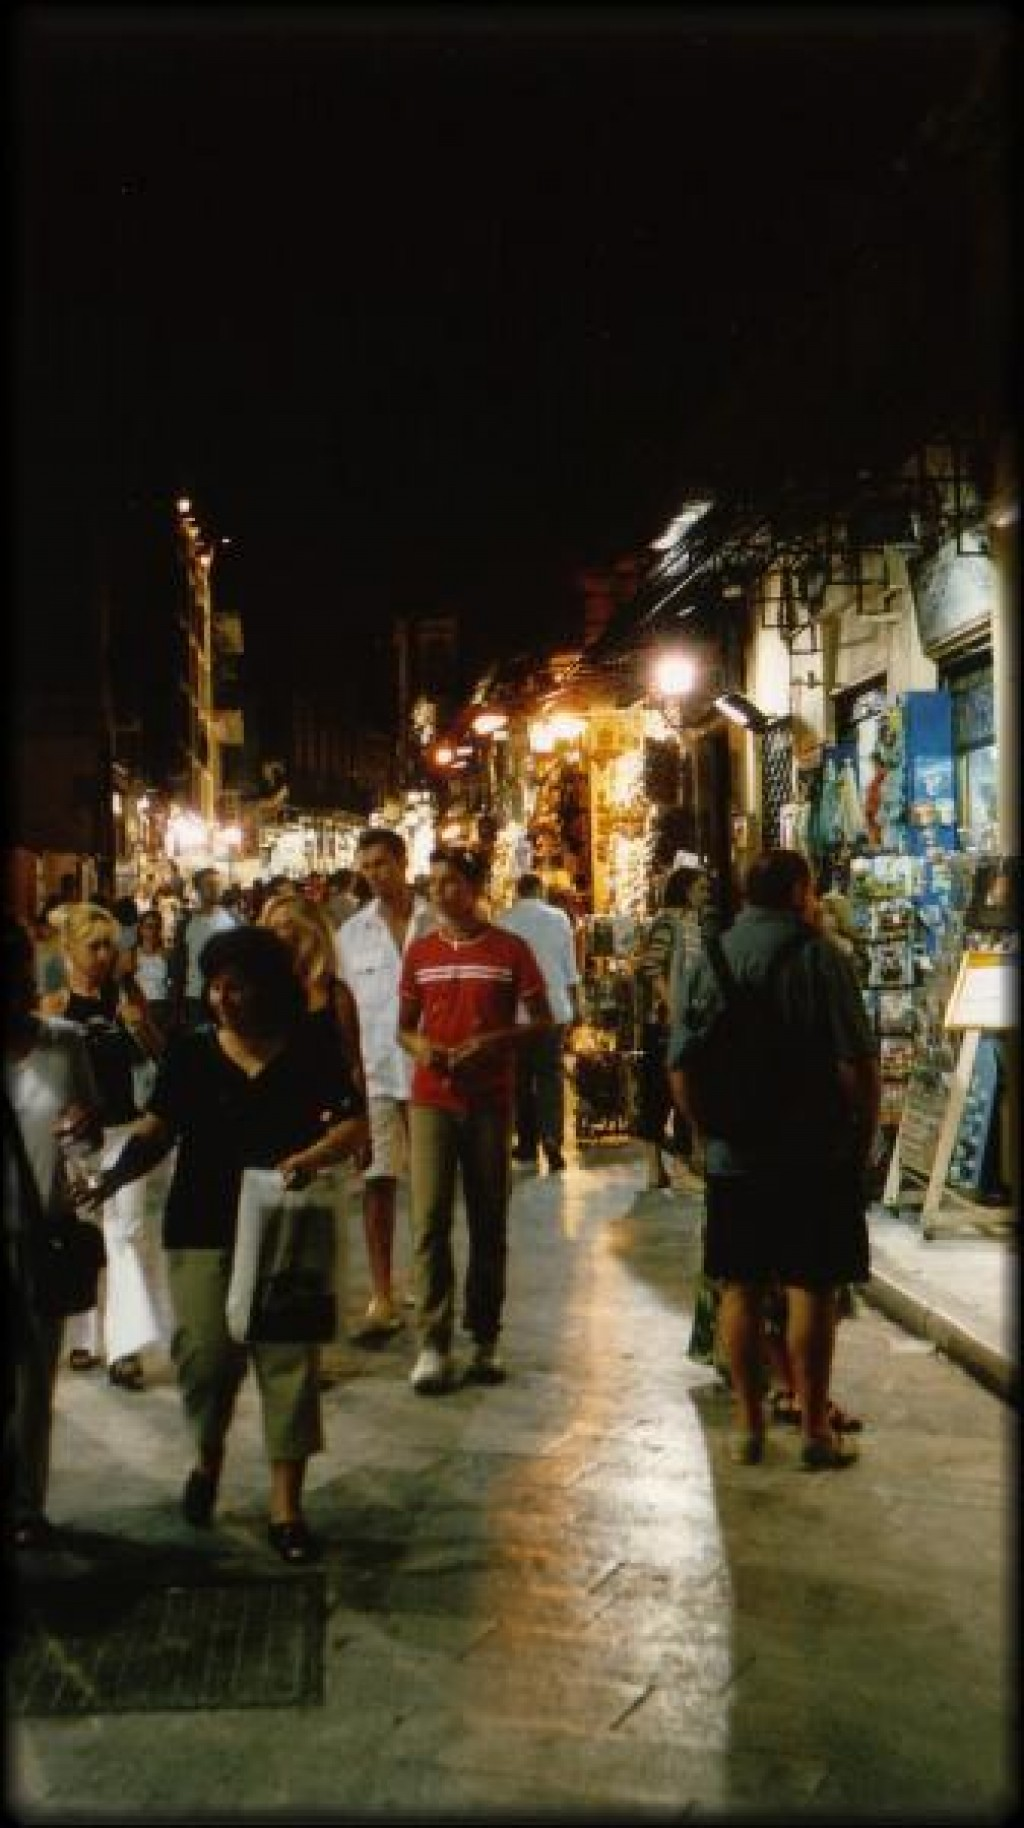 At night, the Plaka turns into a huge shopping area, with many souvenir shops as well as street vendors. It's quite a scene.